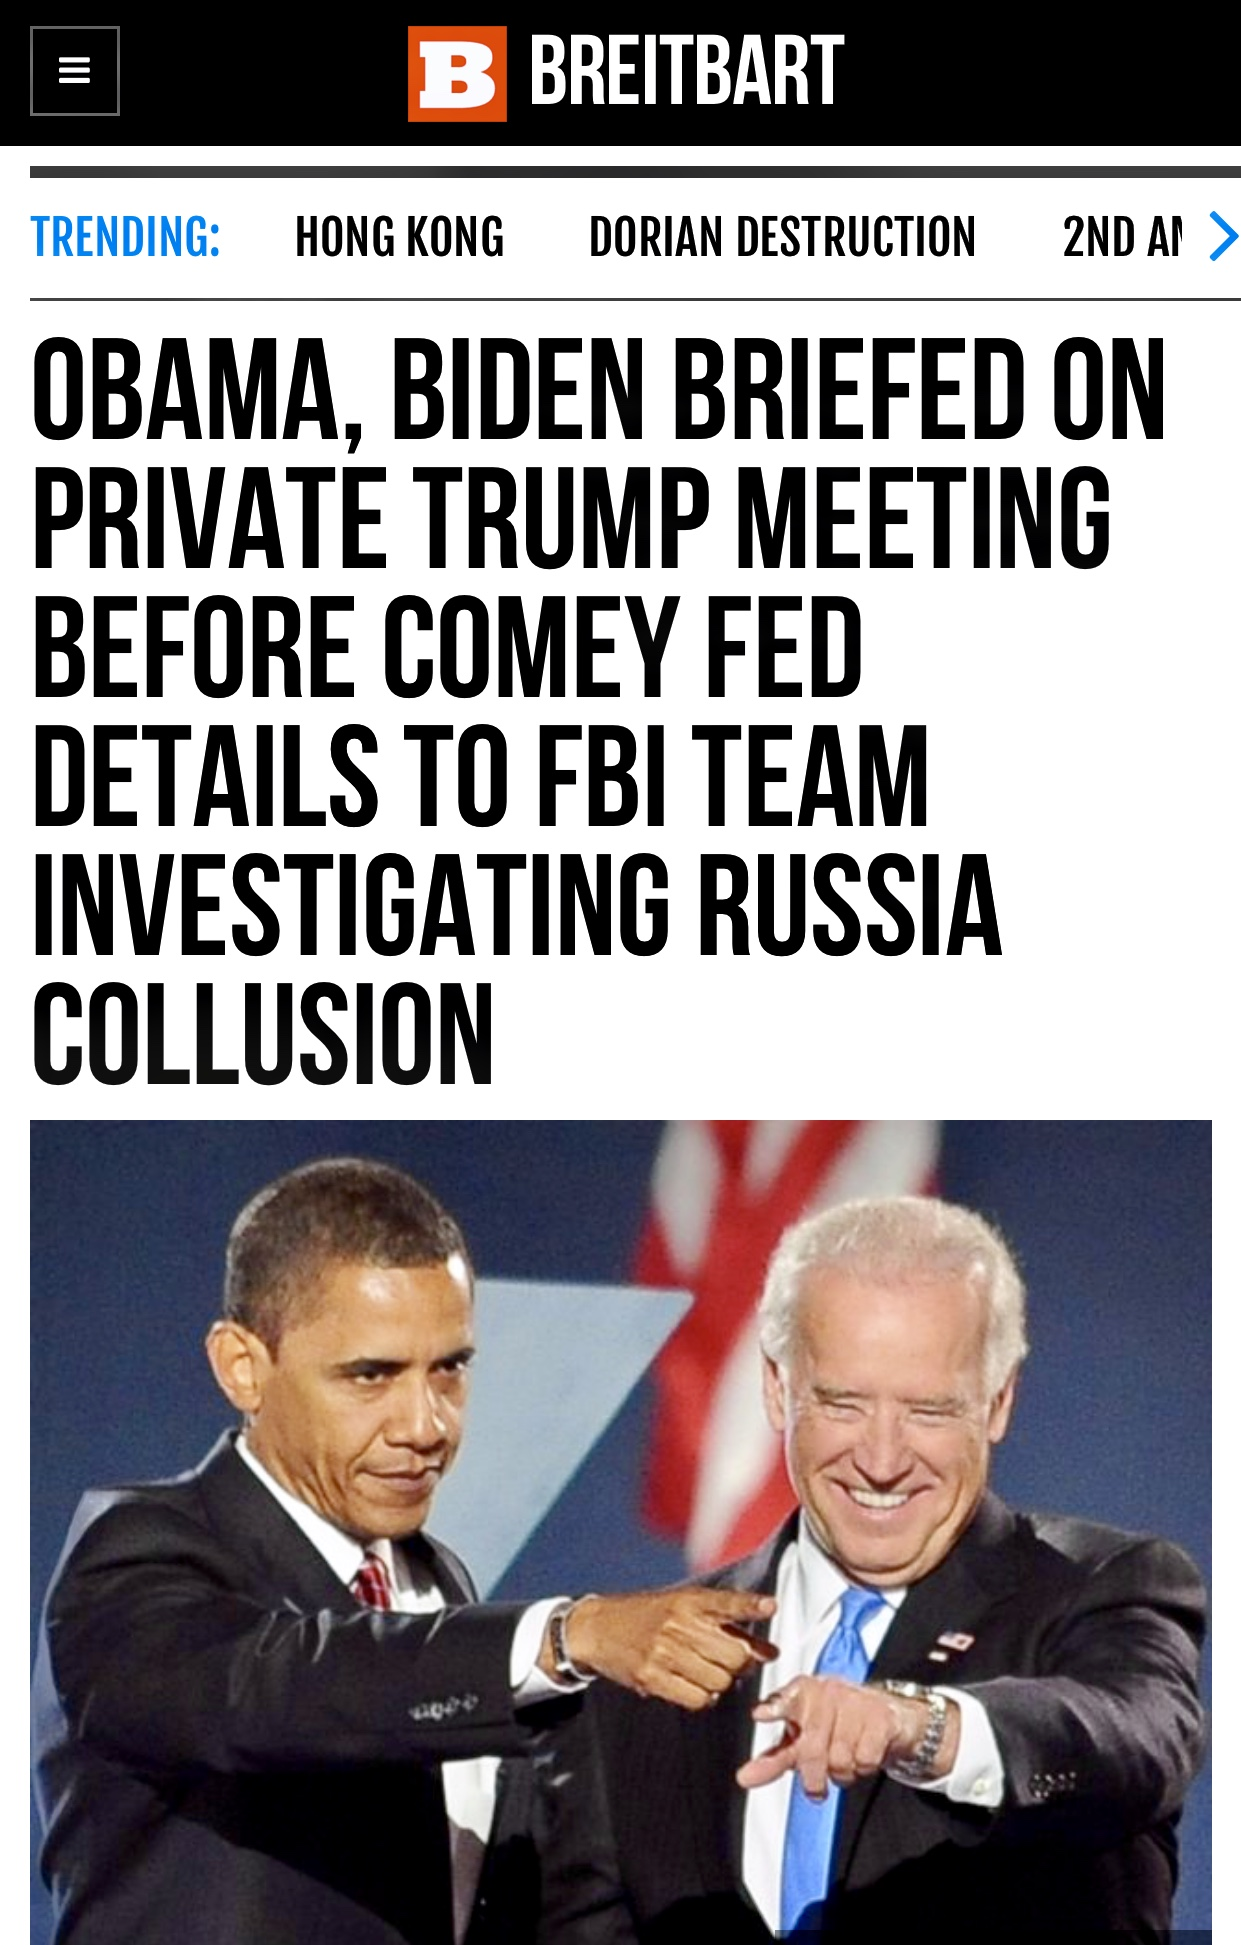 Obama & Biden Briefed on President Trump Mtg Before Comey Fed Details to FBI Team